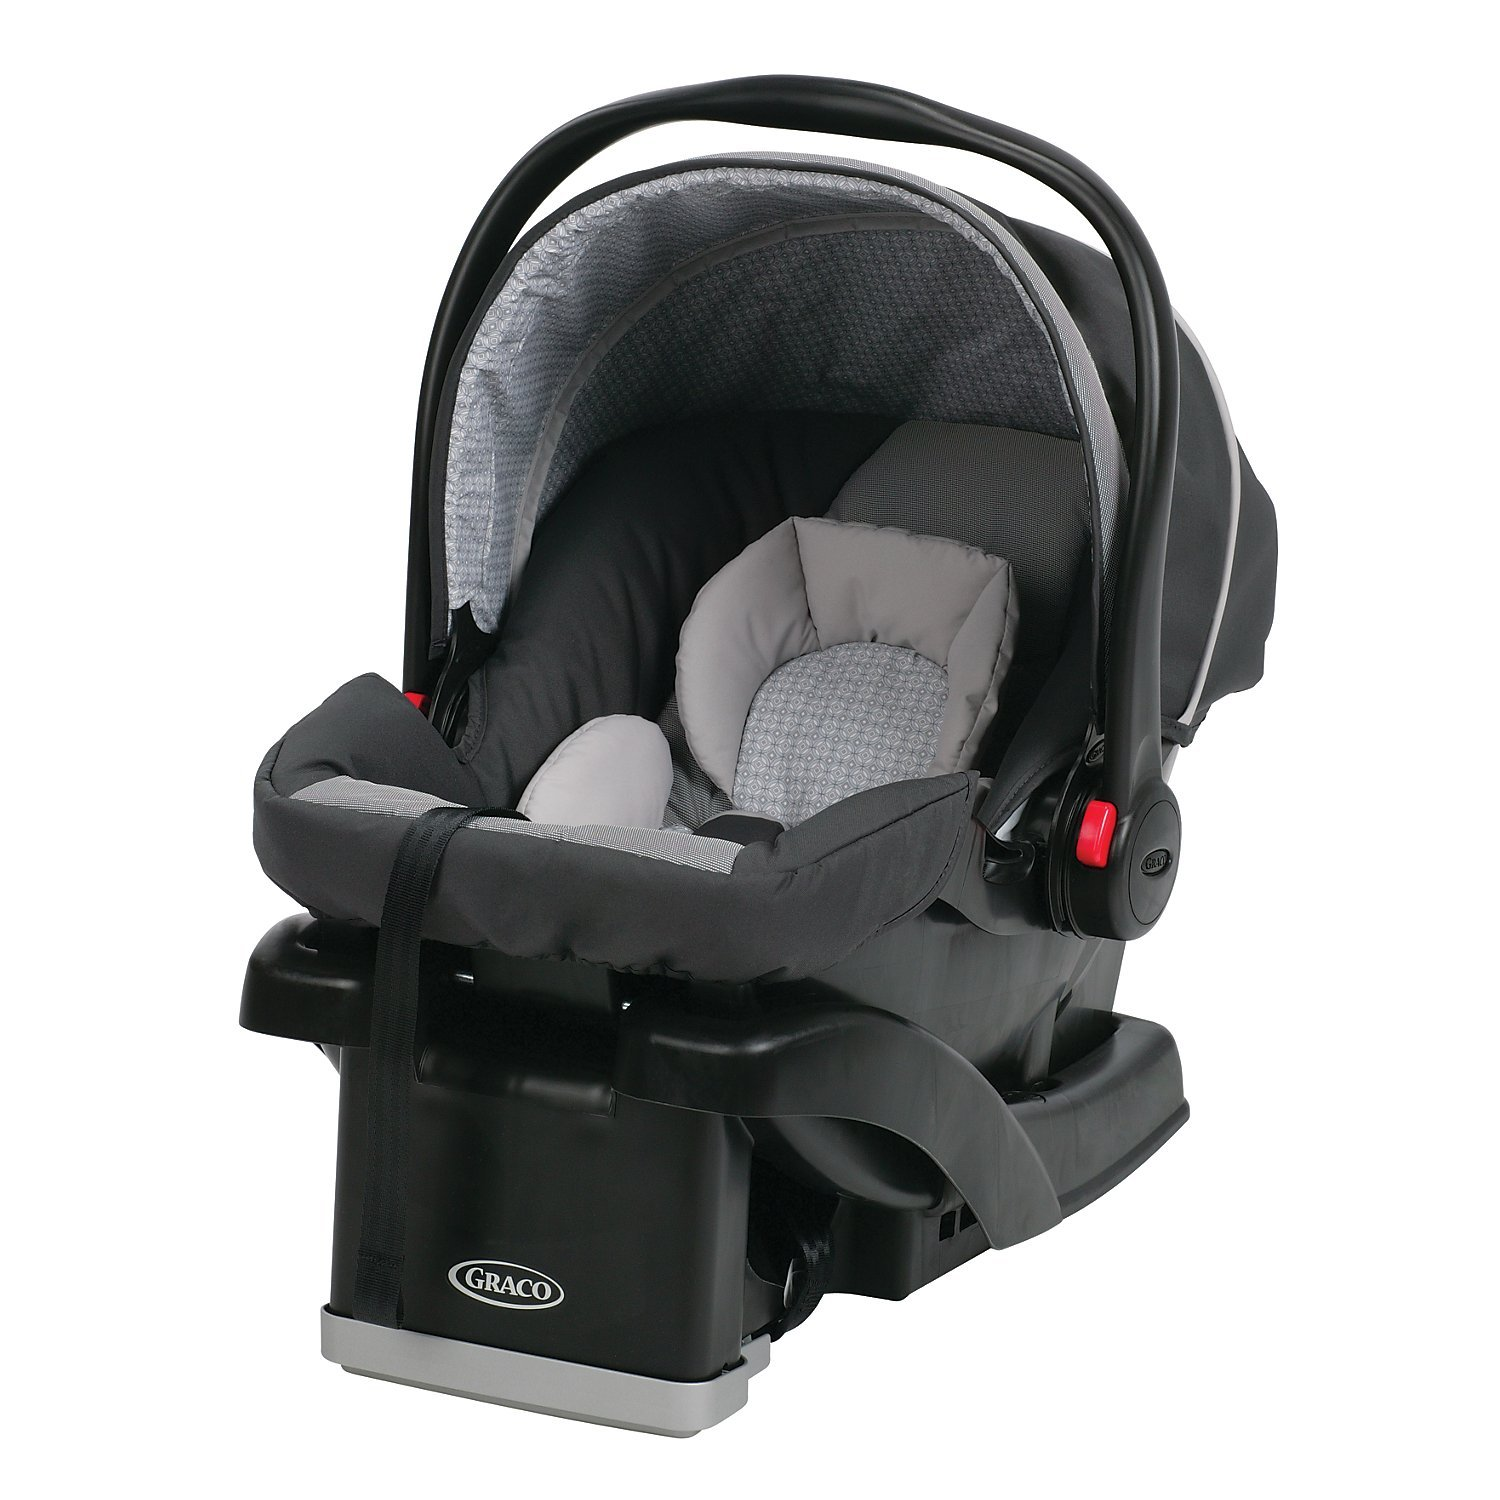 Graco Car Seat-Graco Car Seat Click Connect SnugRide 30 LX Infant Car Seat